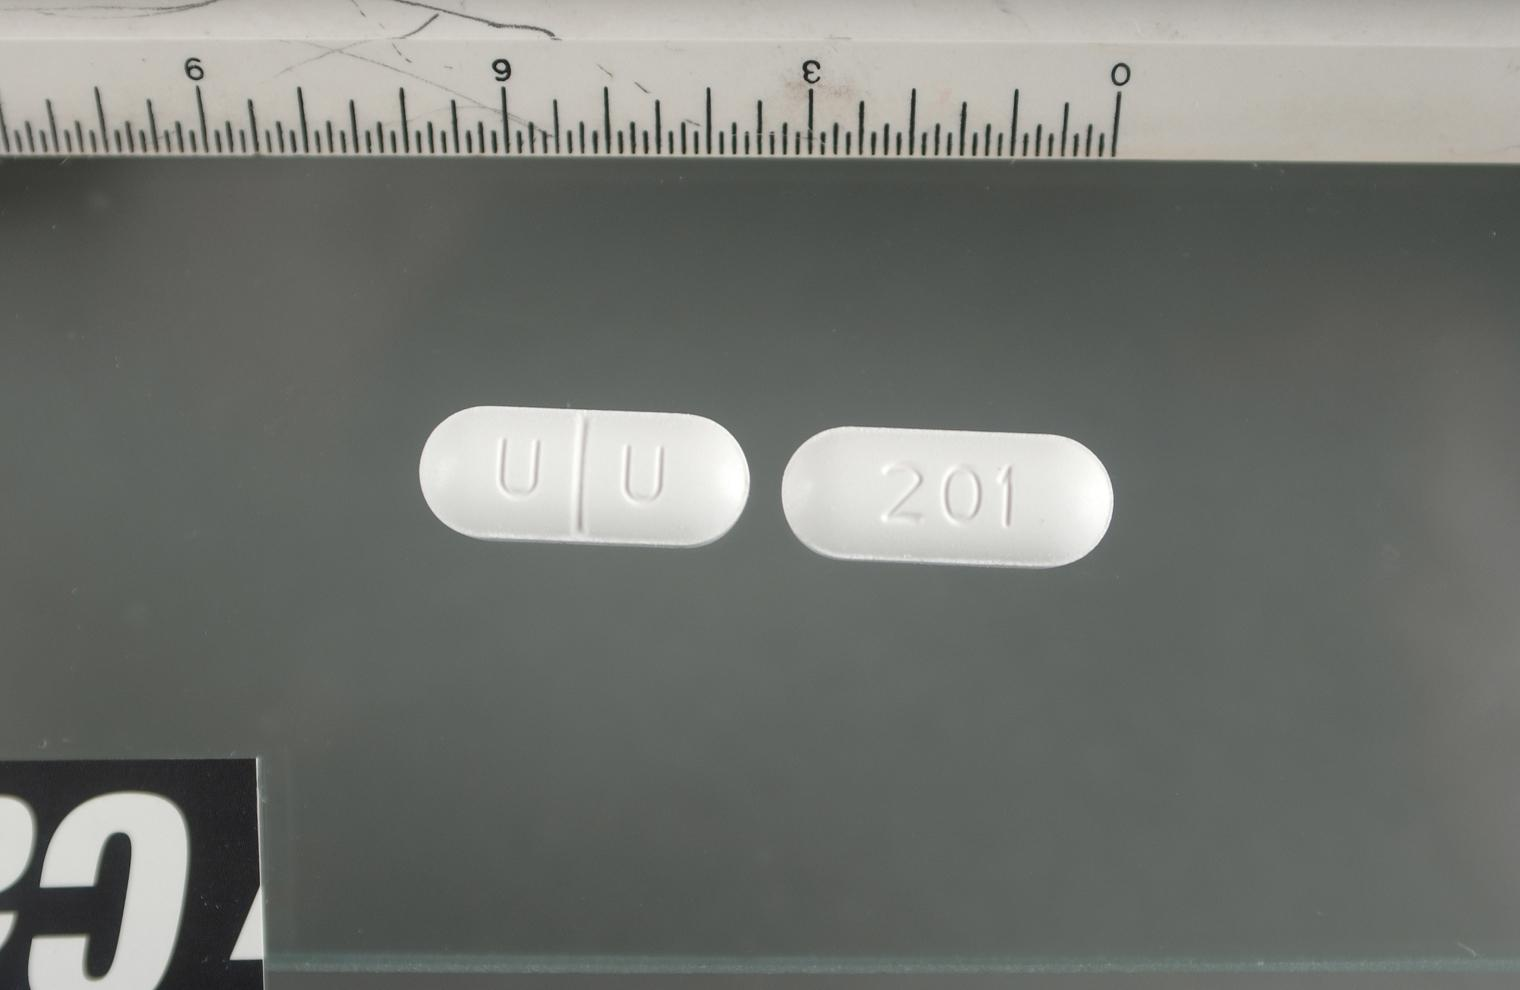 Lorcet Plus 7.5mg